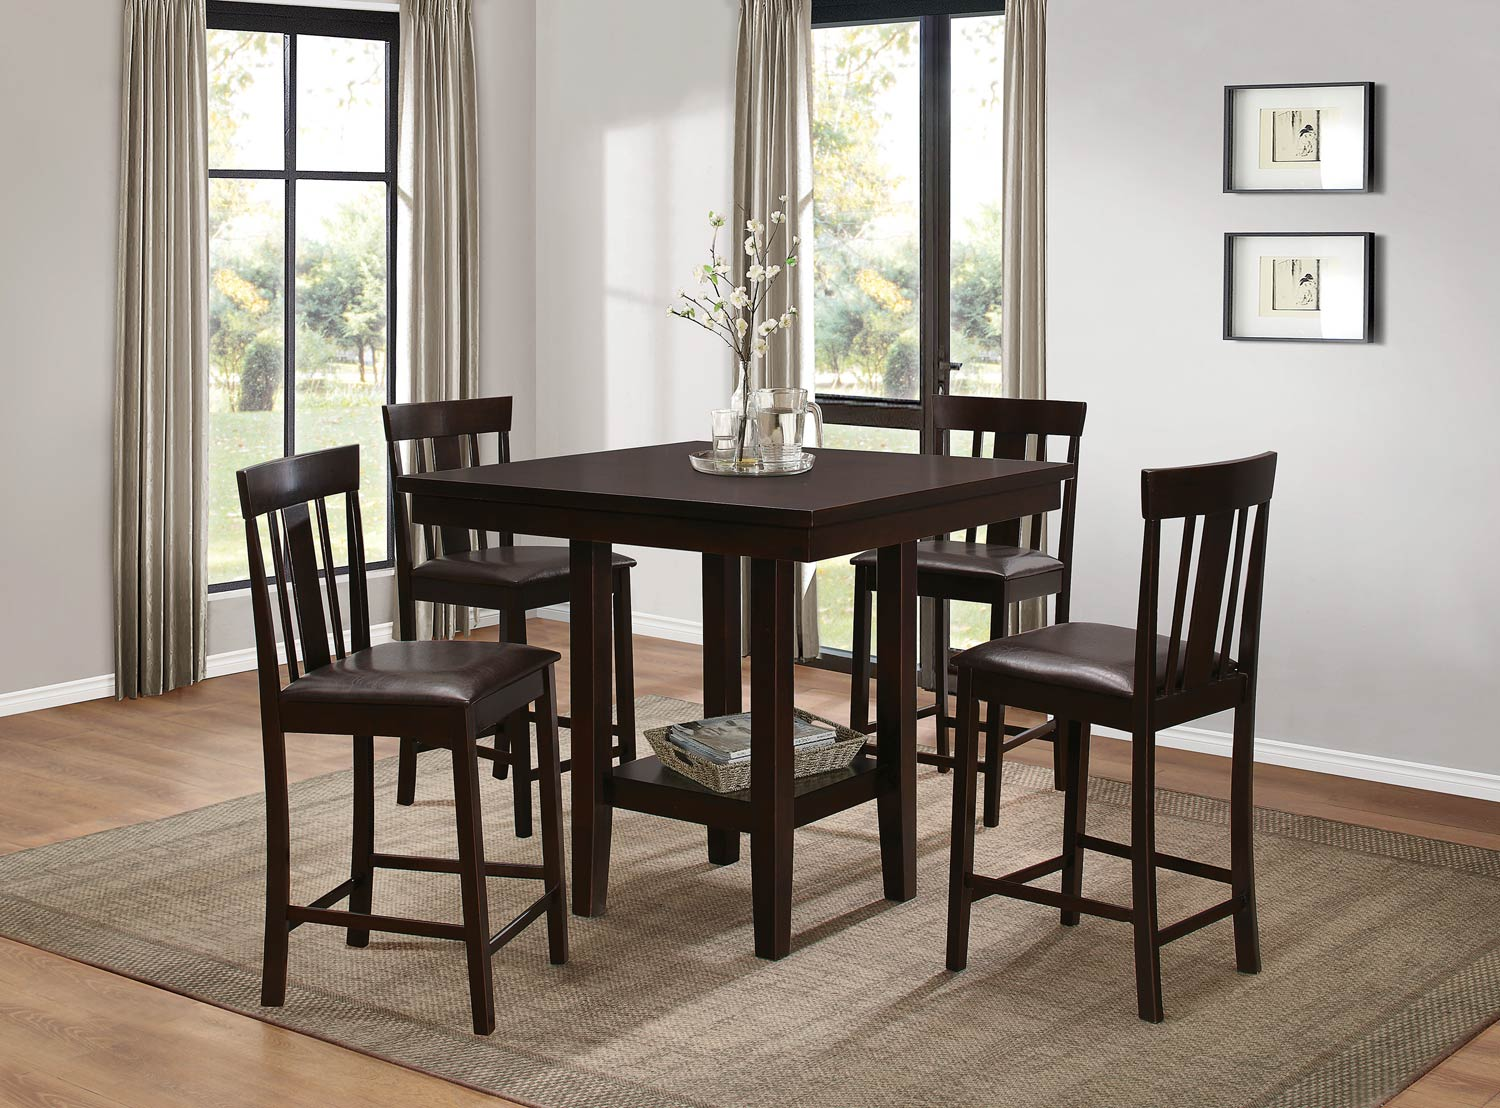 Homelegance Diego Counter Height Dining Set   Espresso